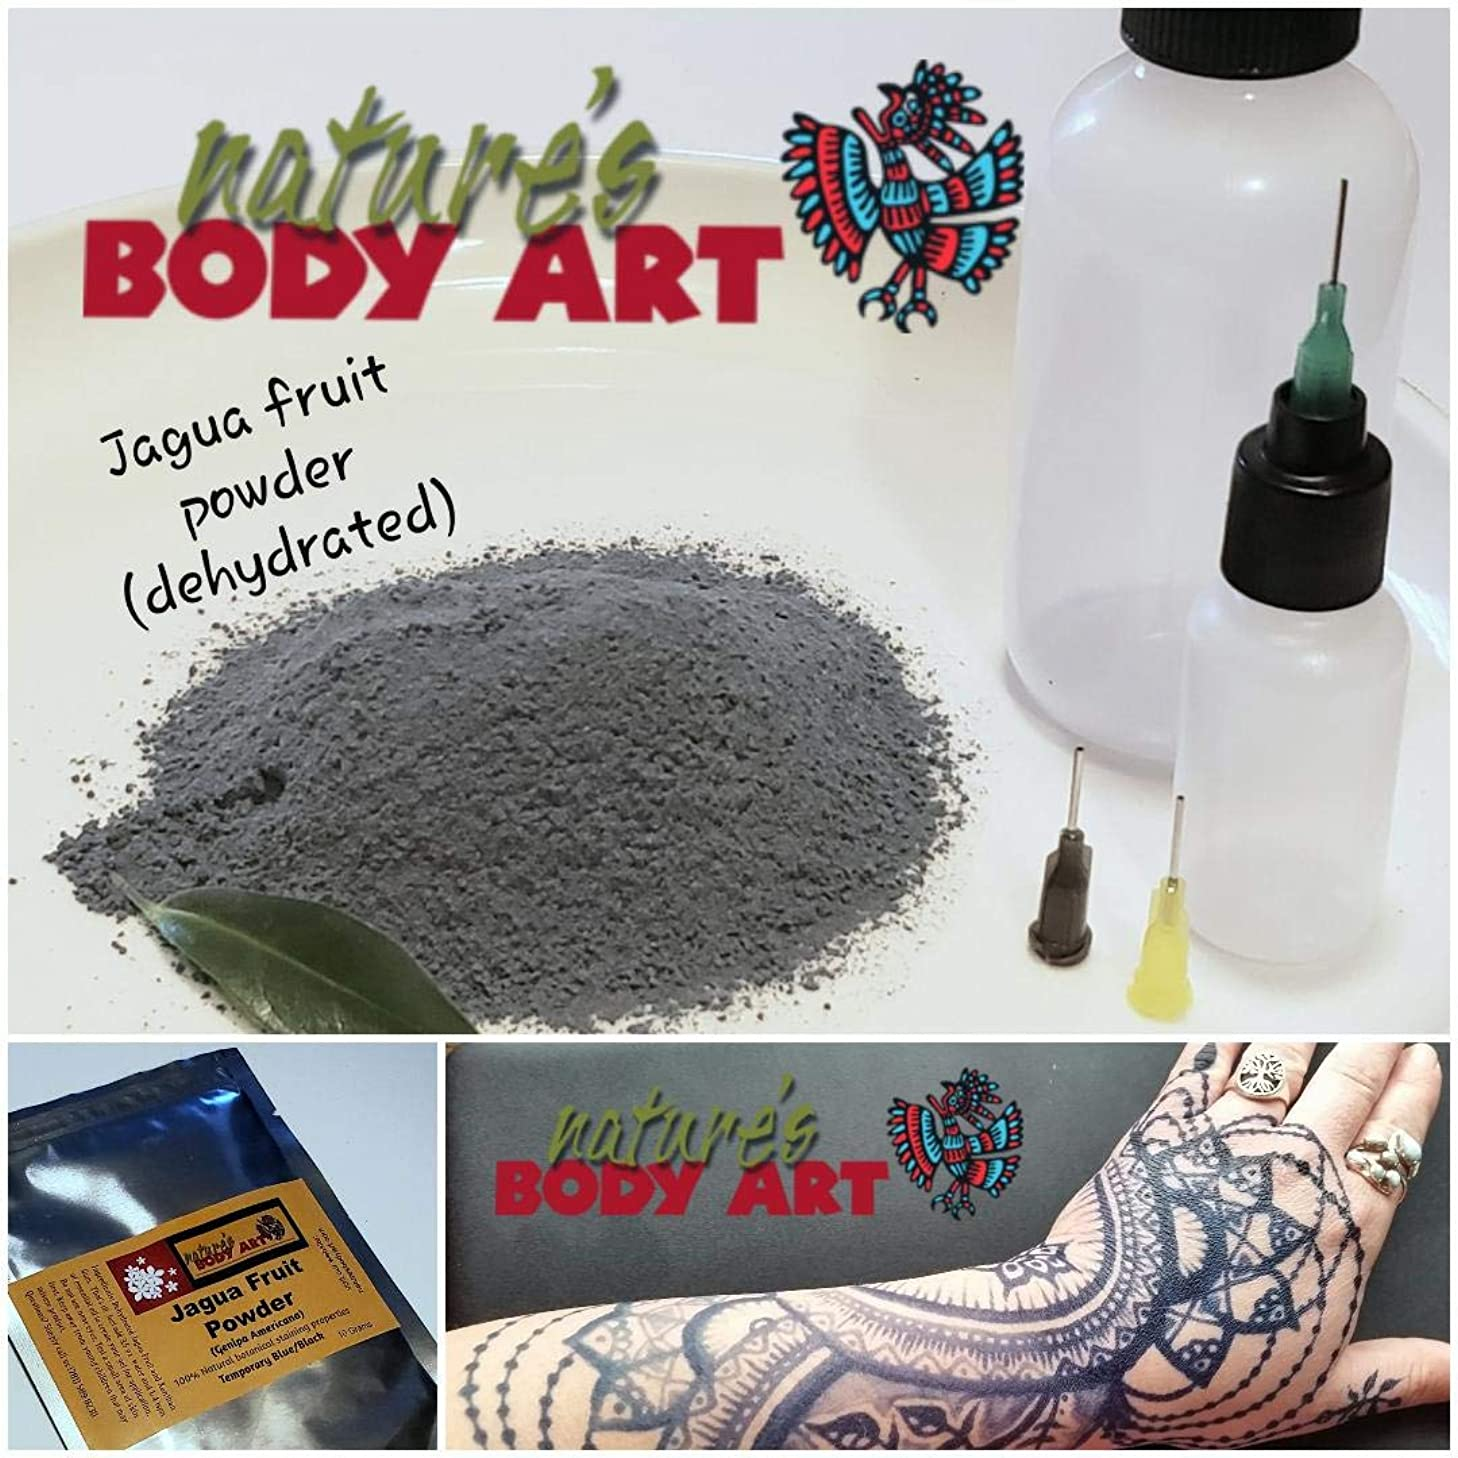 Jagua Tattoo Kit - (dehydrated Fruit Powder Makes 4 Ounces of Gel) Over 120 Tattoo -Support Non-Profit-